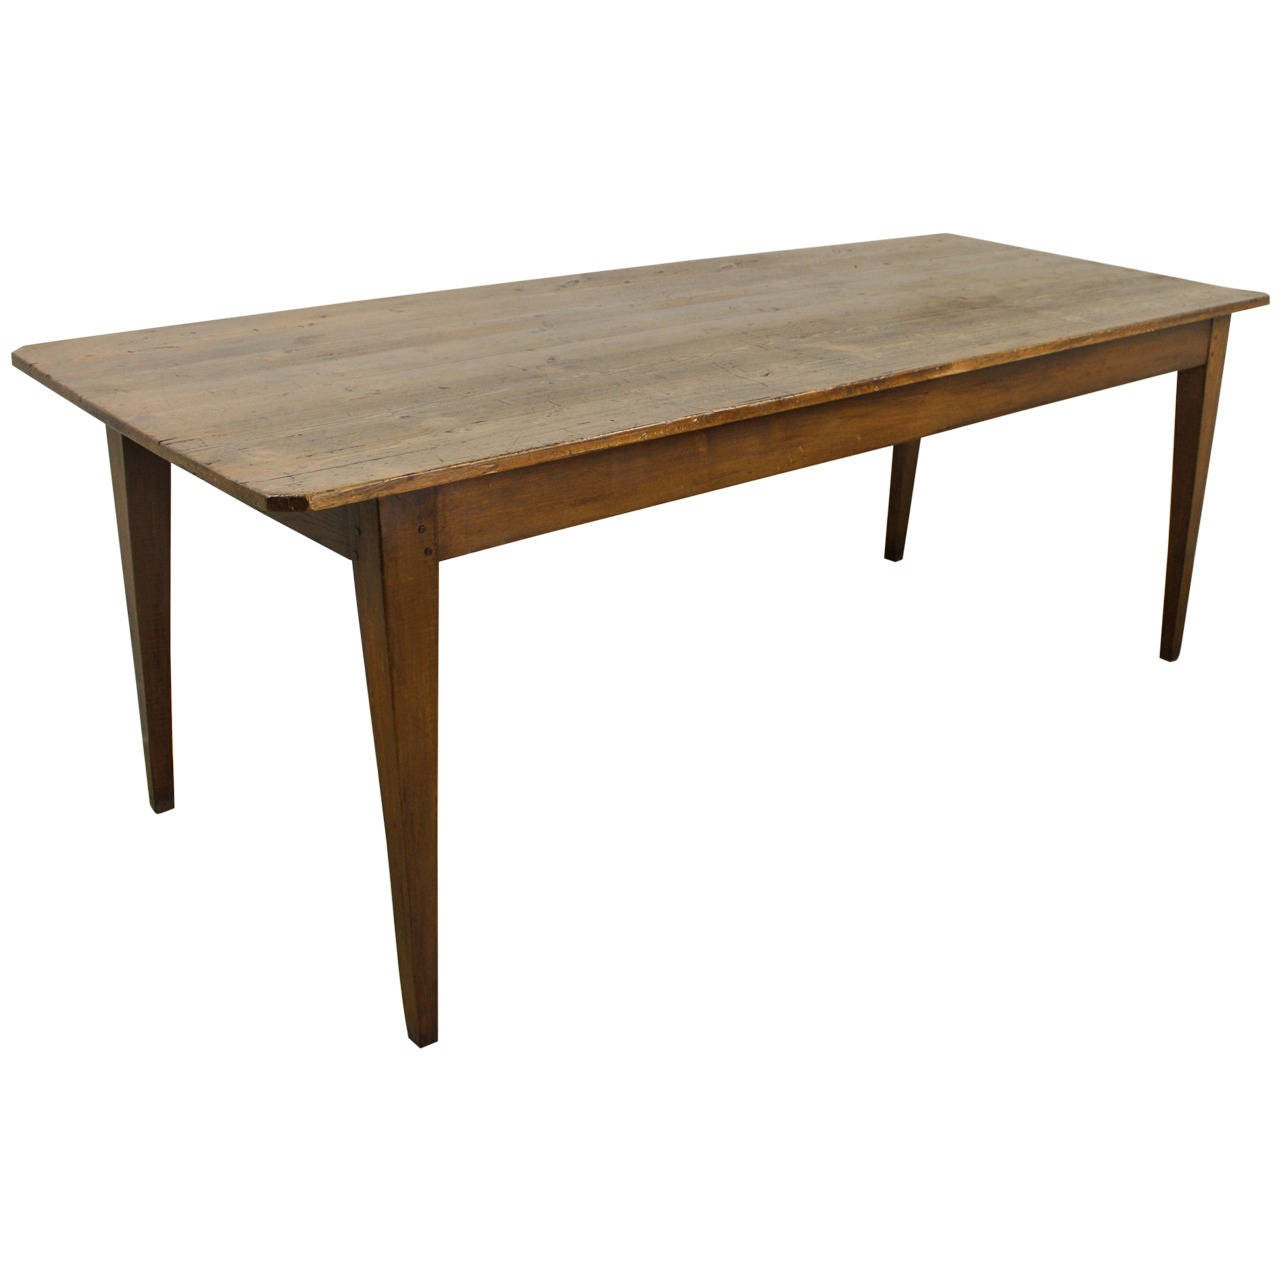 Antique french pine farmhouse table at 1stdibs for Pine dining room table